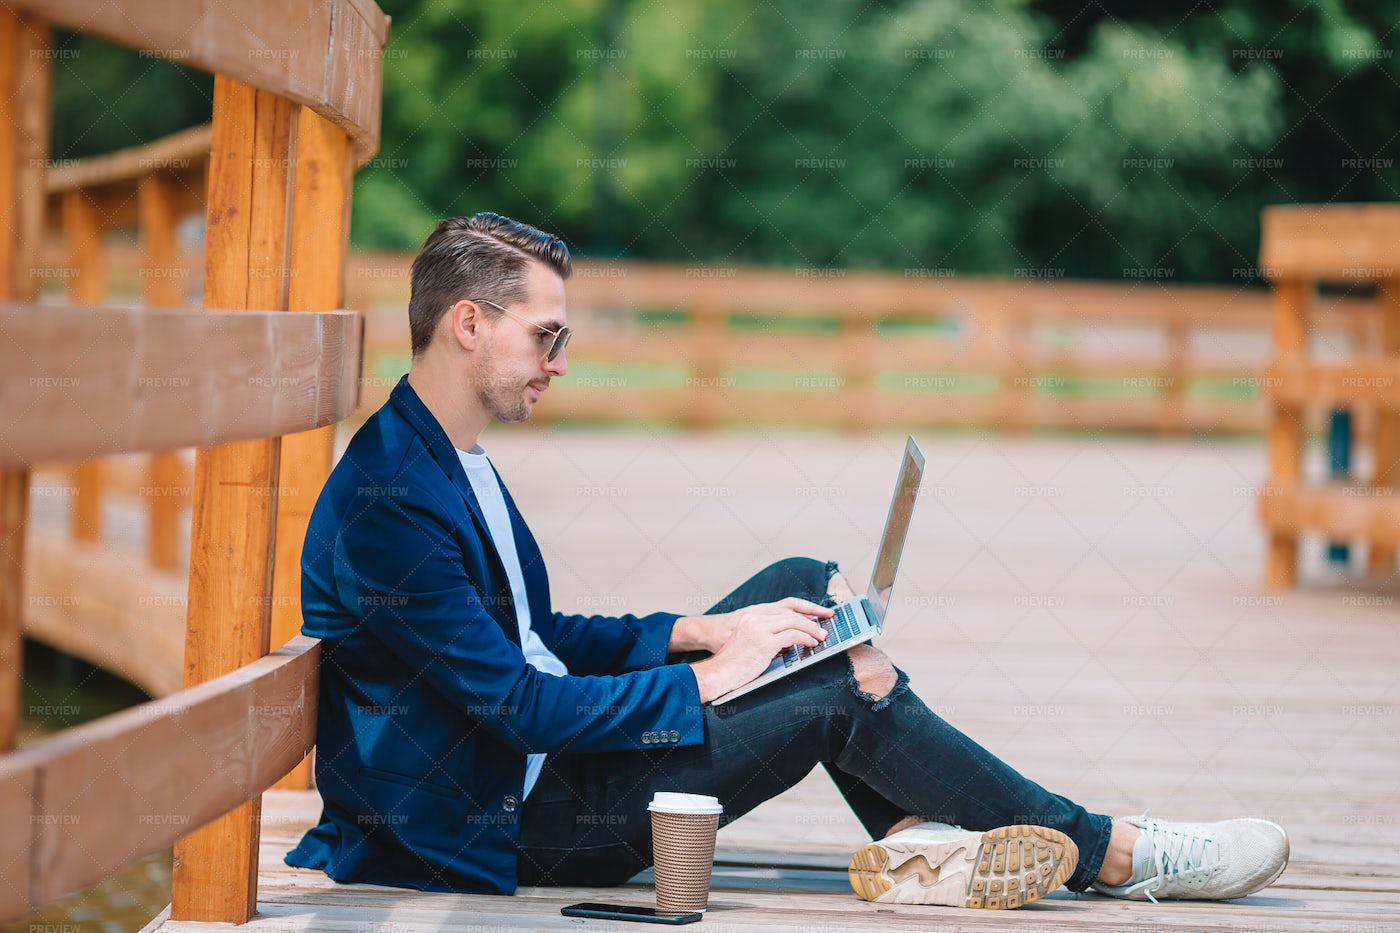 Using Laptop In A Park: Stock Photos